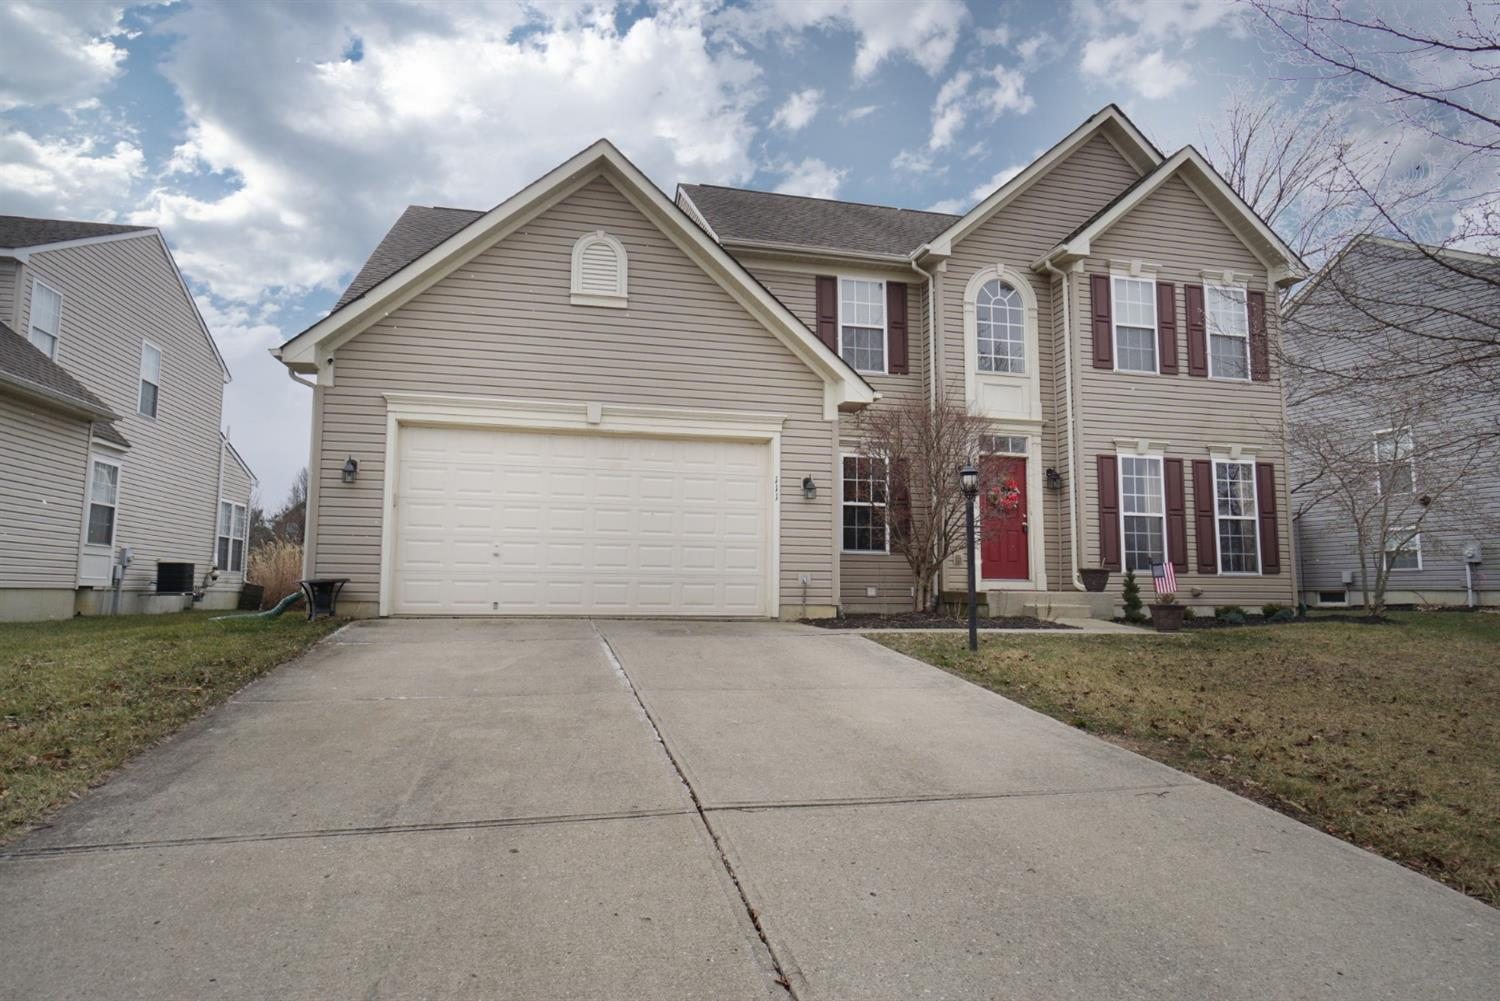 Property for sale at 111 Fieldstone Way, Lebanon,  OH 45036